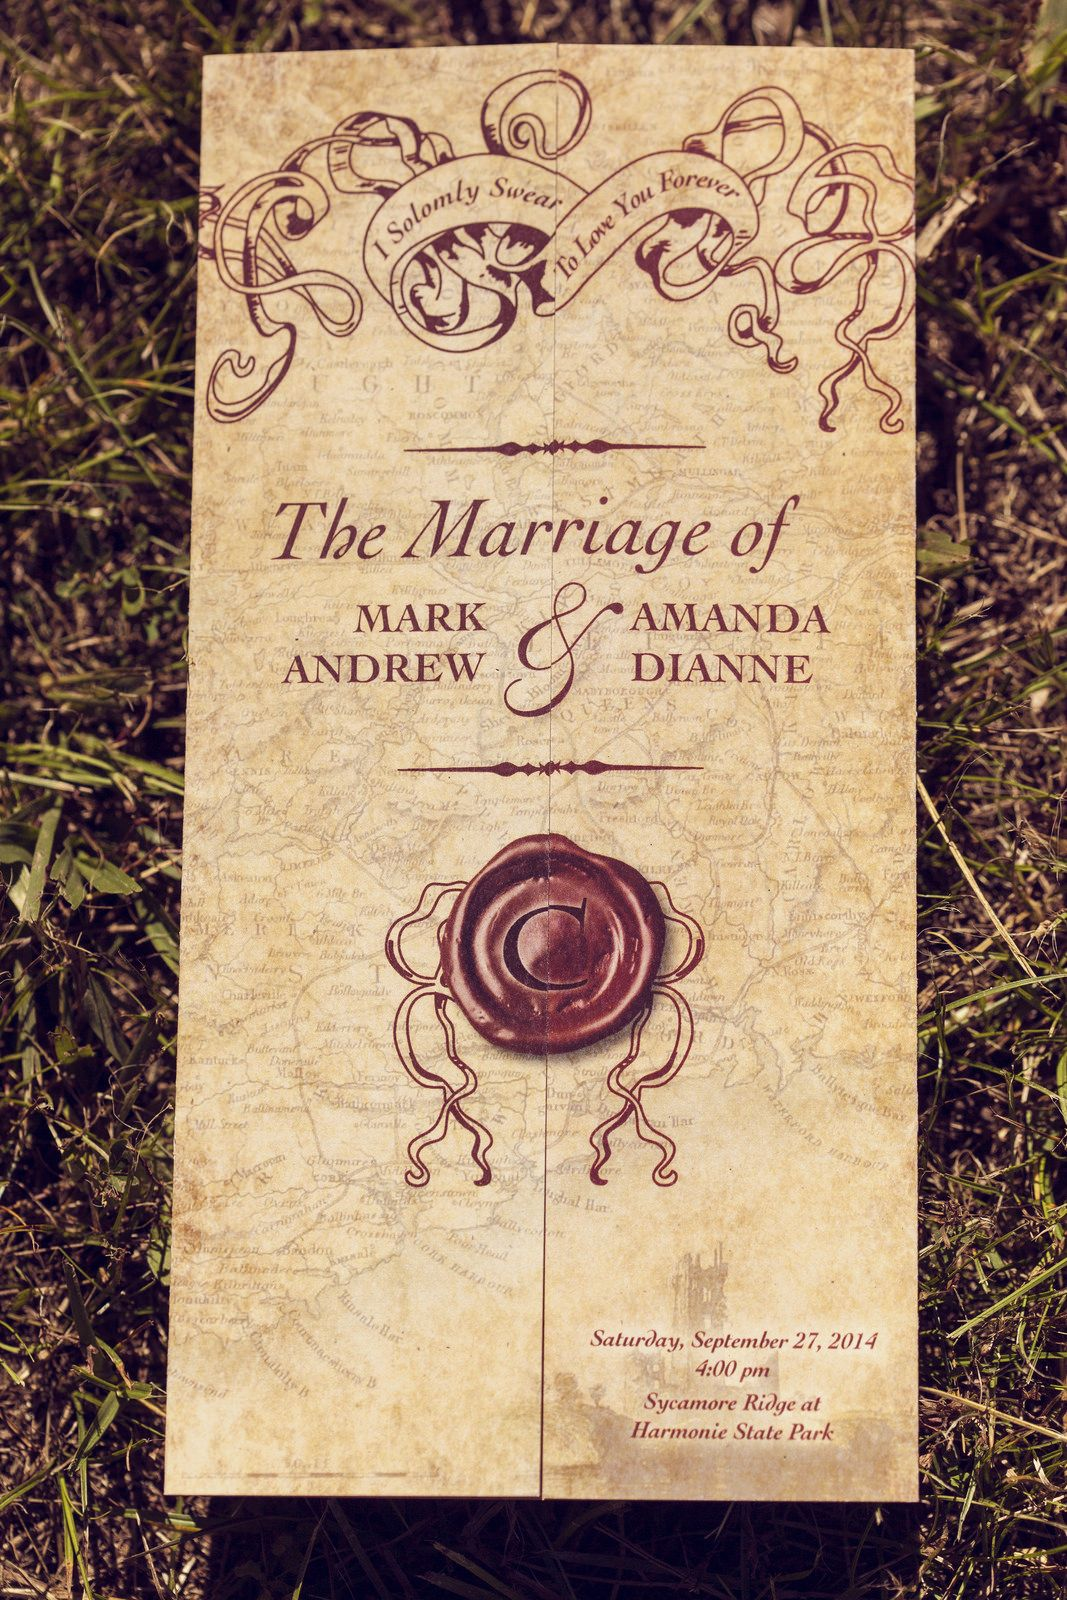 Vintage styled invitations would be cool to